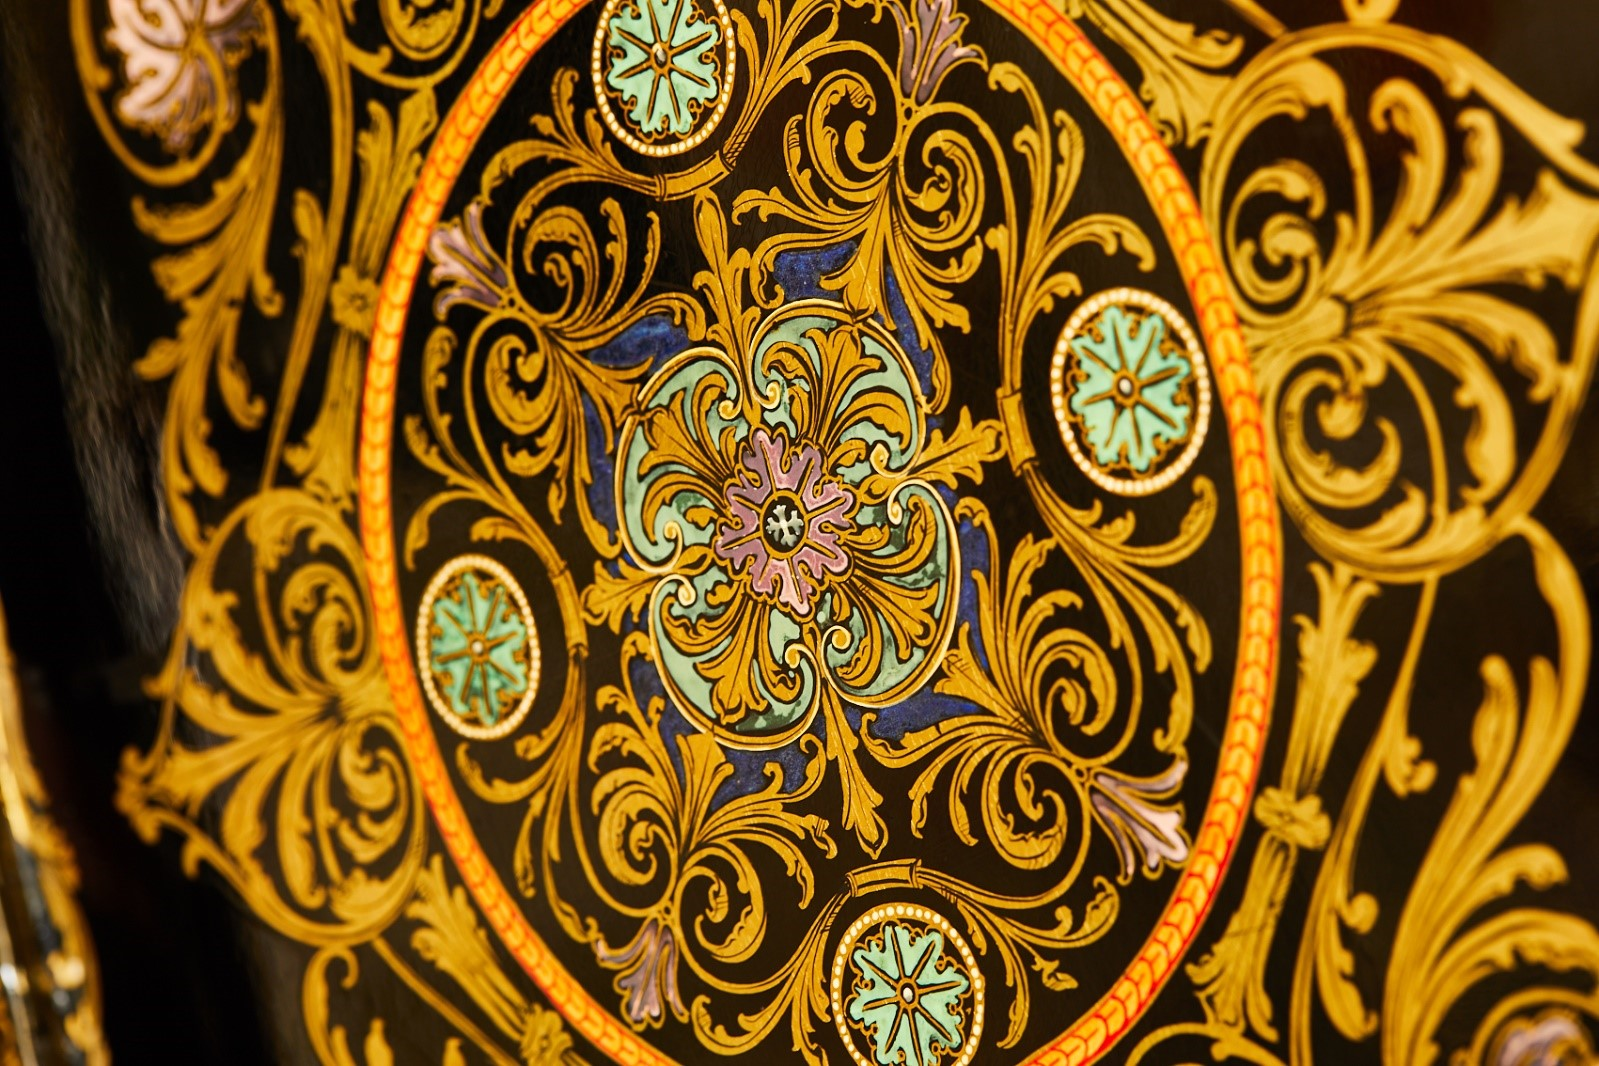 Inlaid detailed design of leaf motifs and swirls in yellow, blue and pink